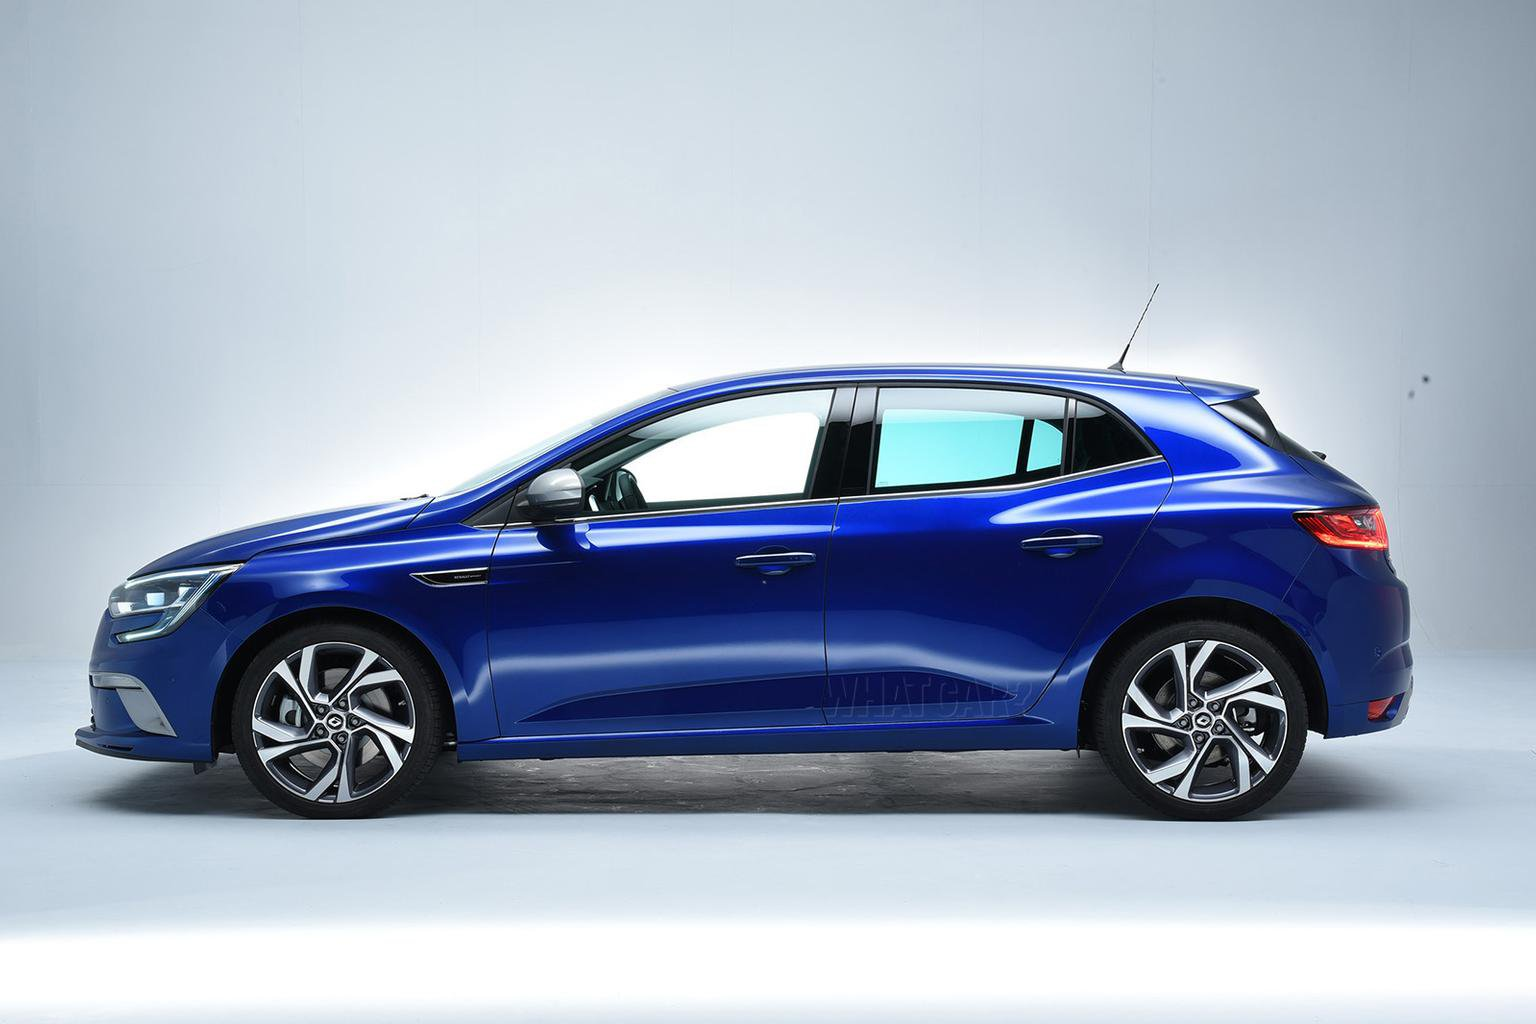 New Renault Megane revealed - exclusive pictures